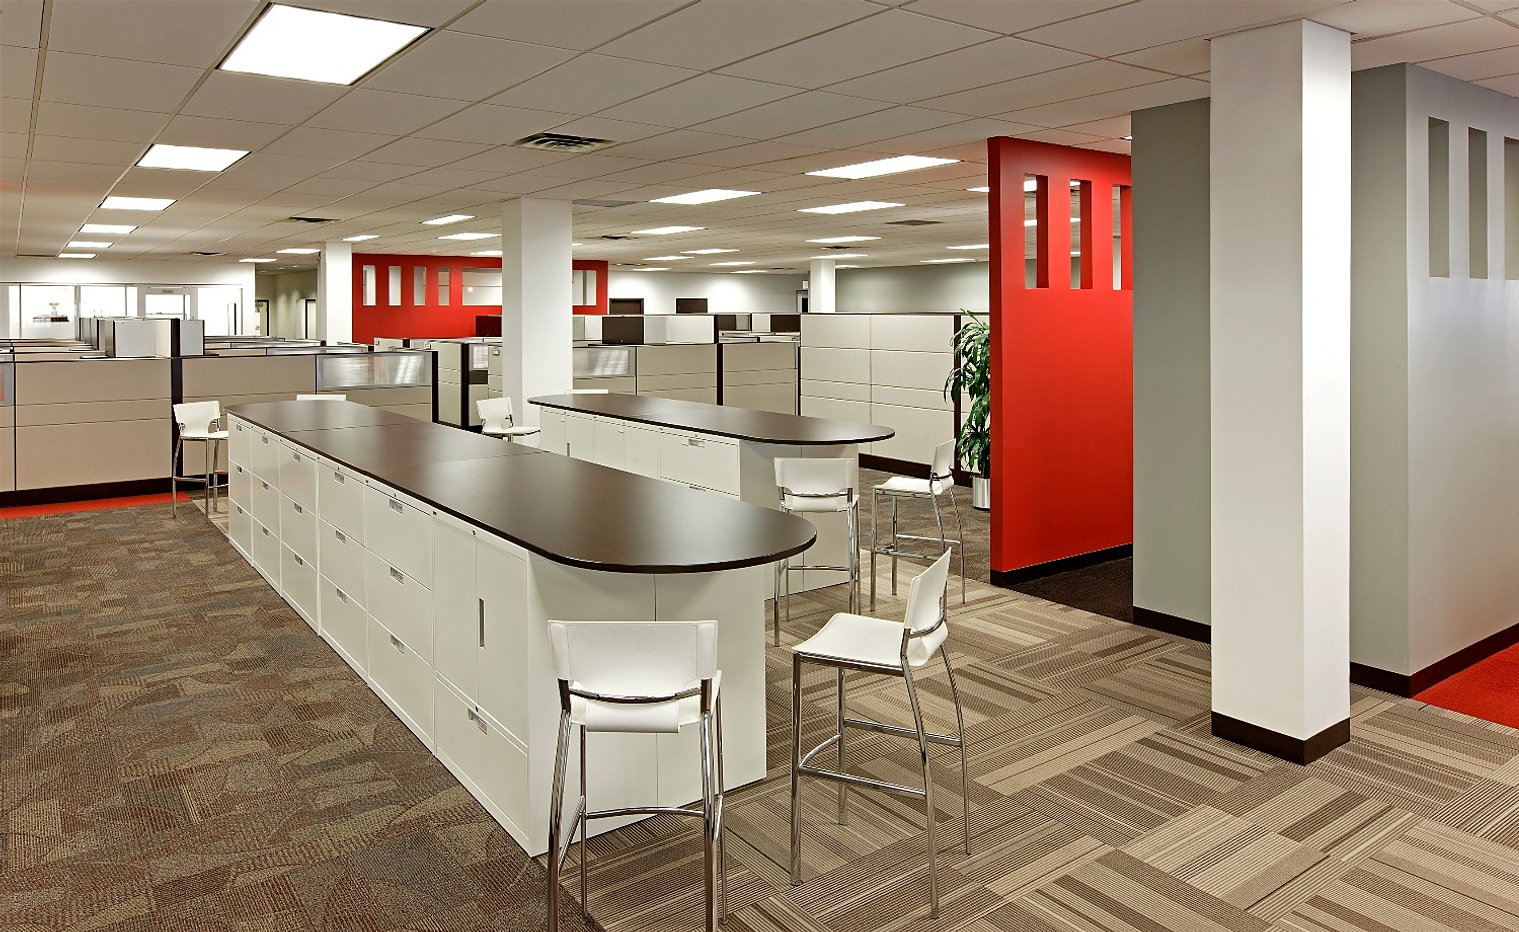 Ldb design commercial interior design toronto office for Commercial interior design